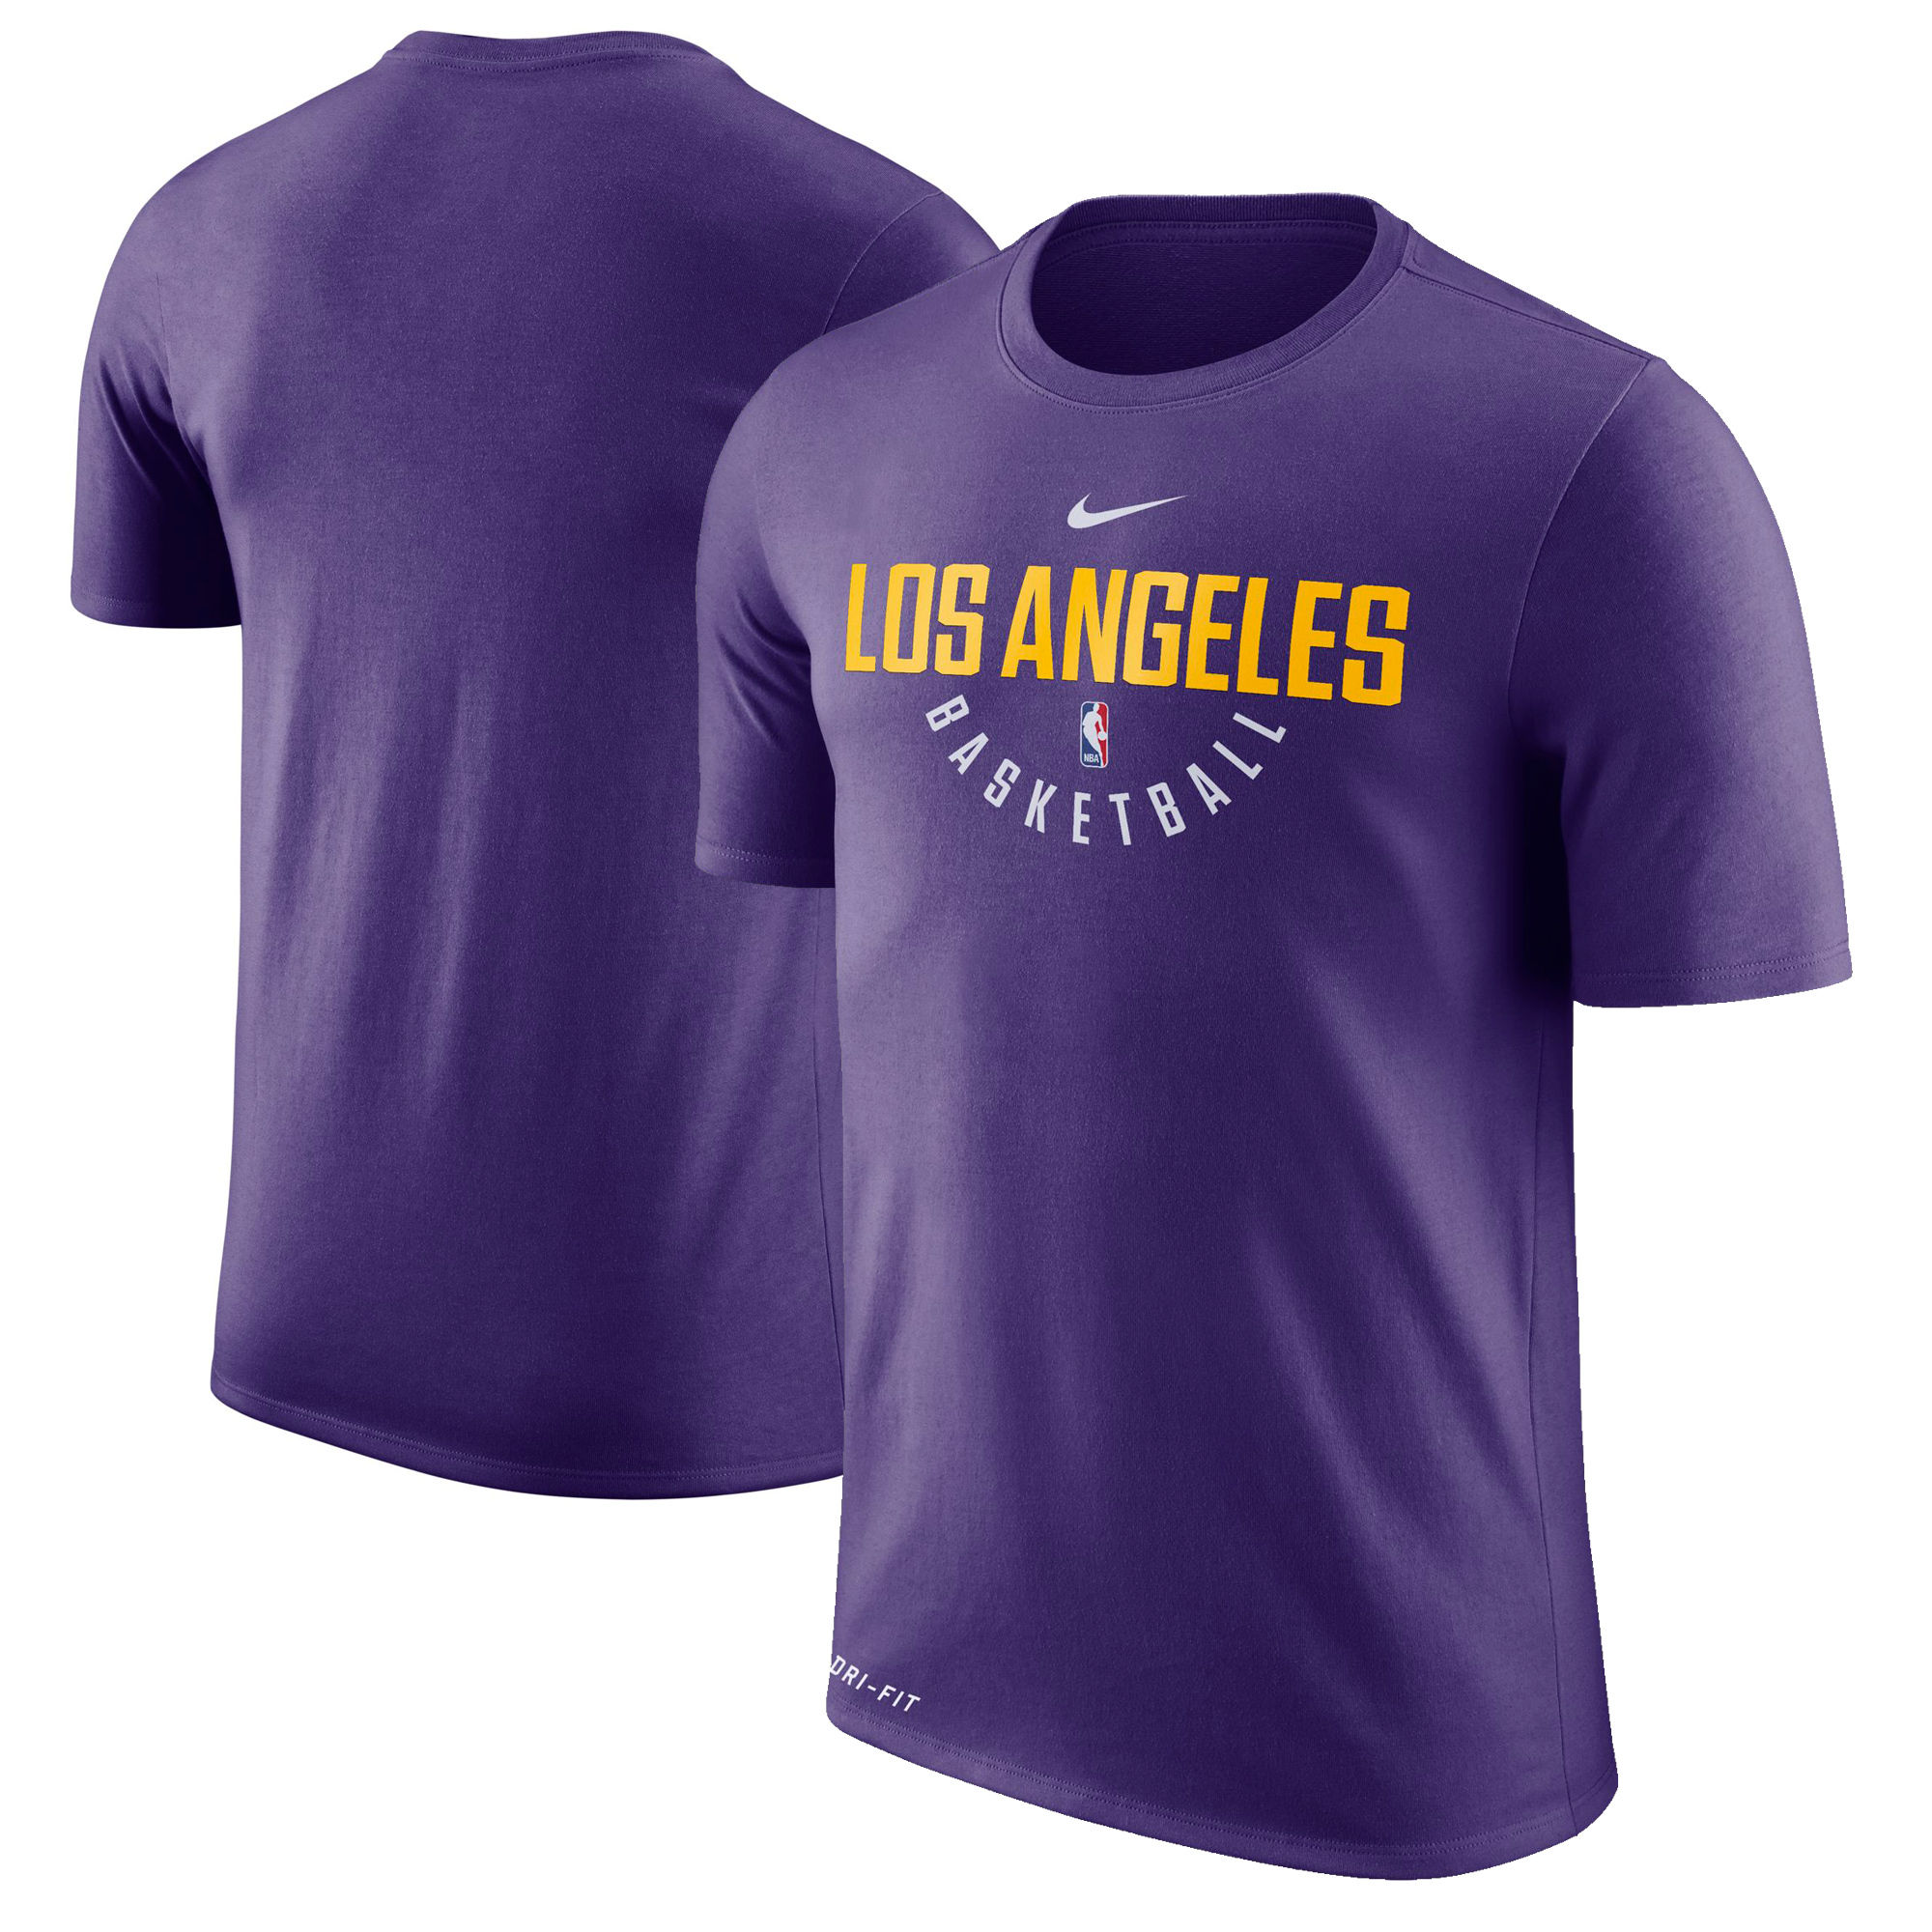 Los Angeles Lakers Purple Nike Practice Performance T-Shirt